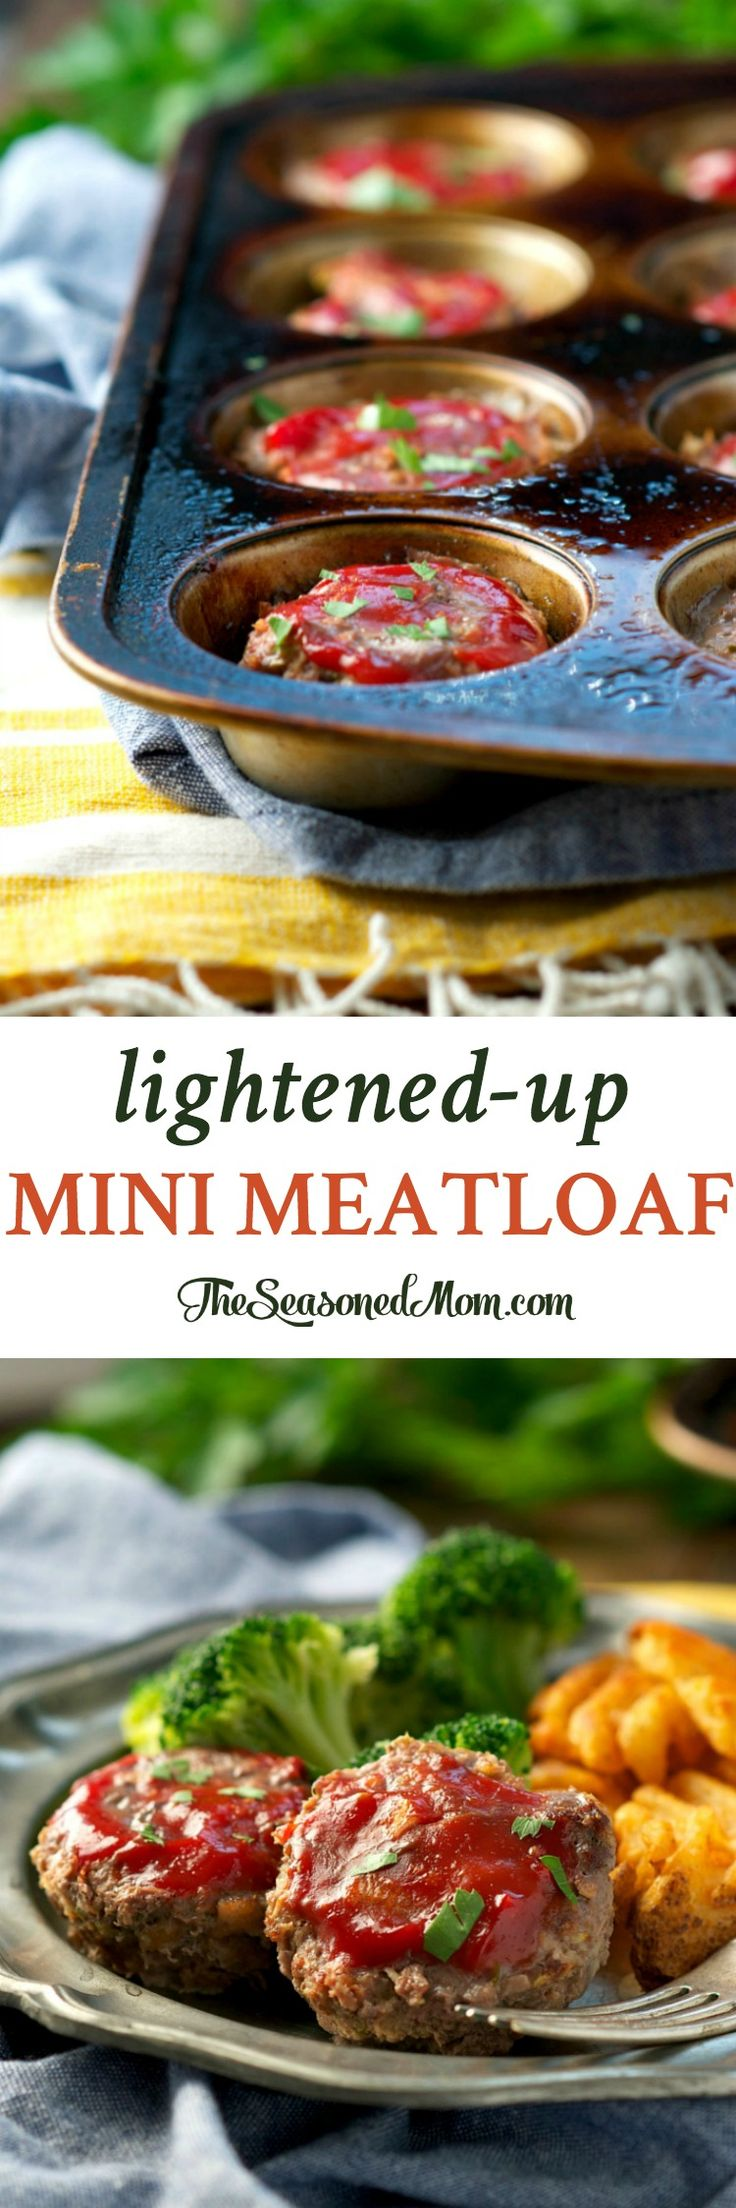 1130 best whats for dinner images on pinterest baking center lightened up mini meatloaf easy low calorie dinnershealthy forumfinder Image collections